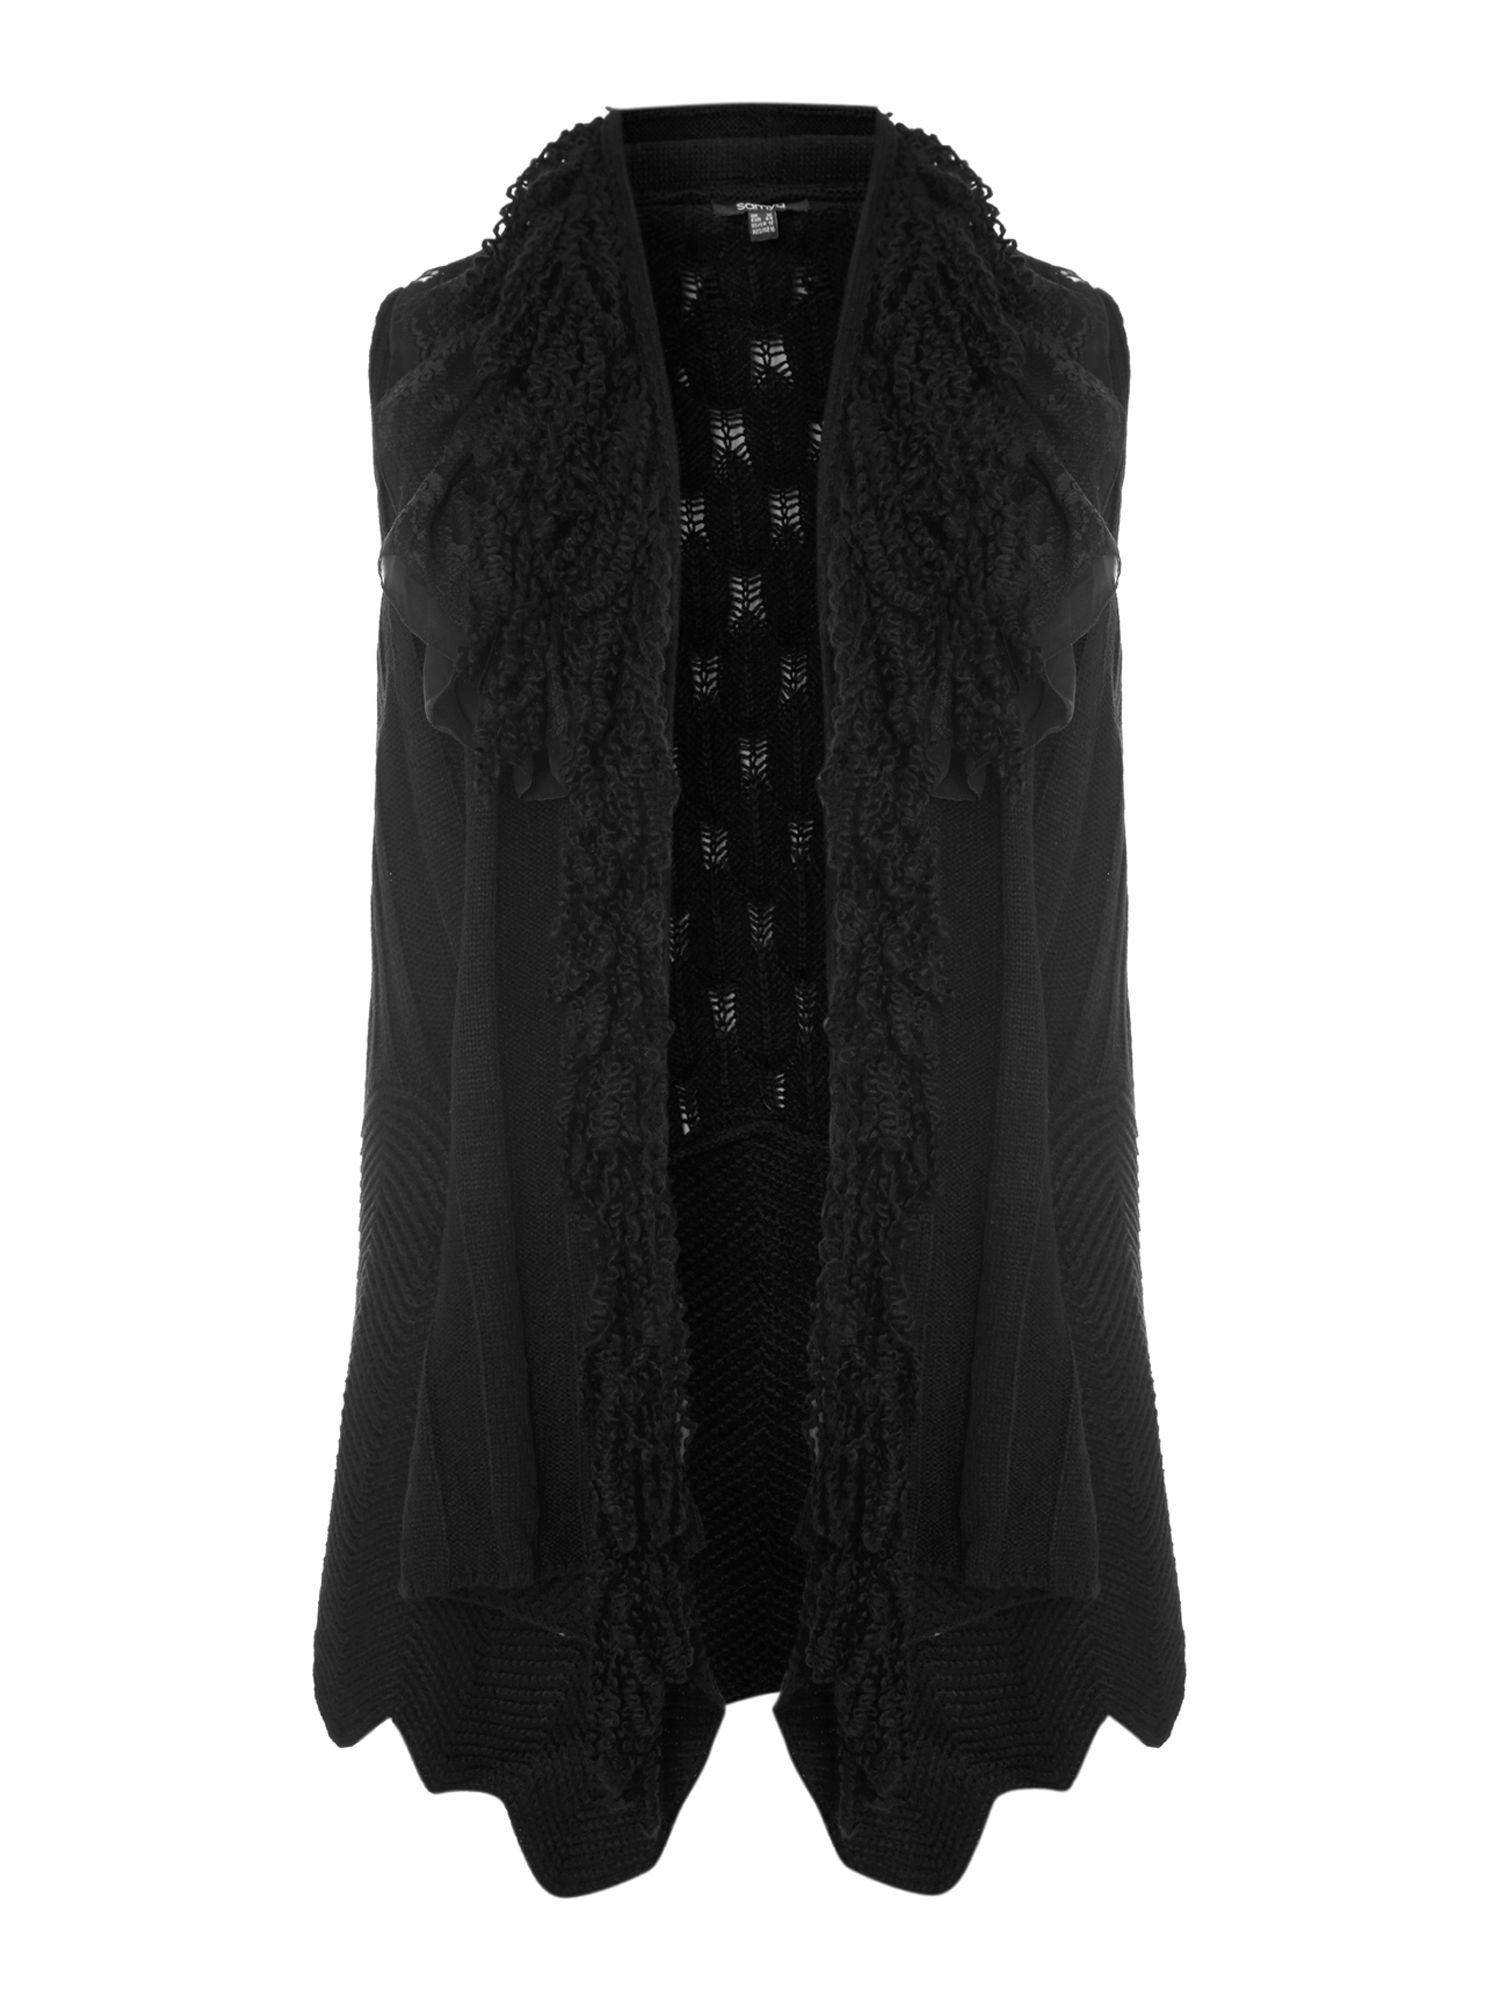 Sleeveless frill knitted cardigan